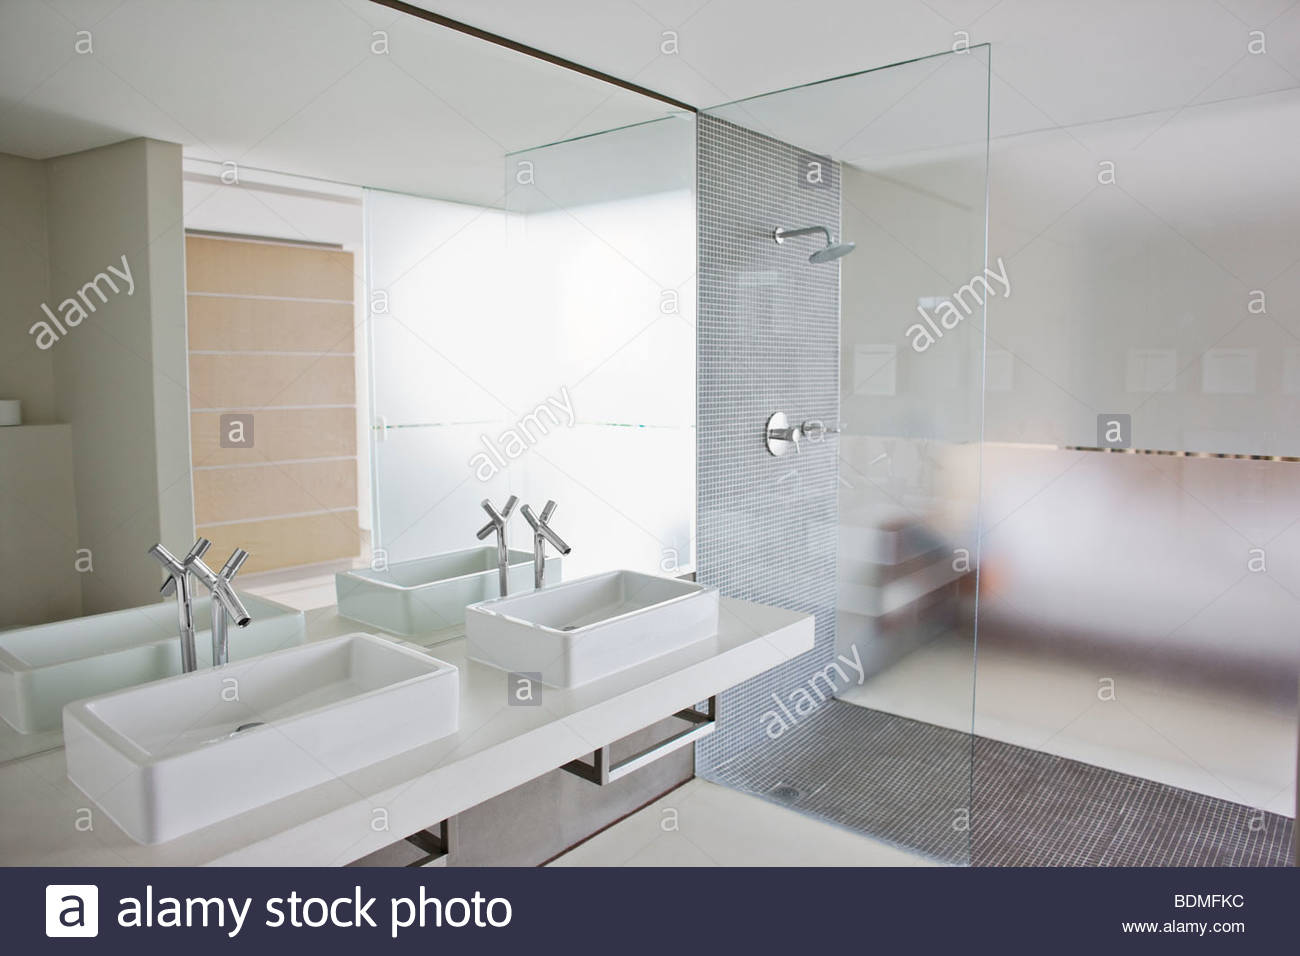 Double Shower Stock Photos & Double Shower Stock Images - Alamy